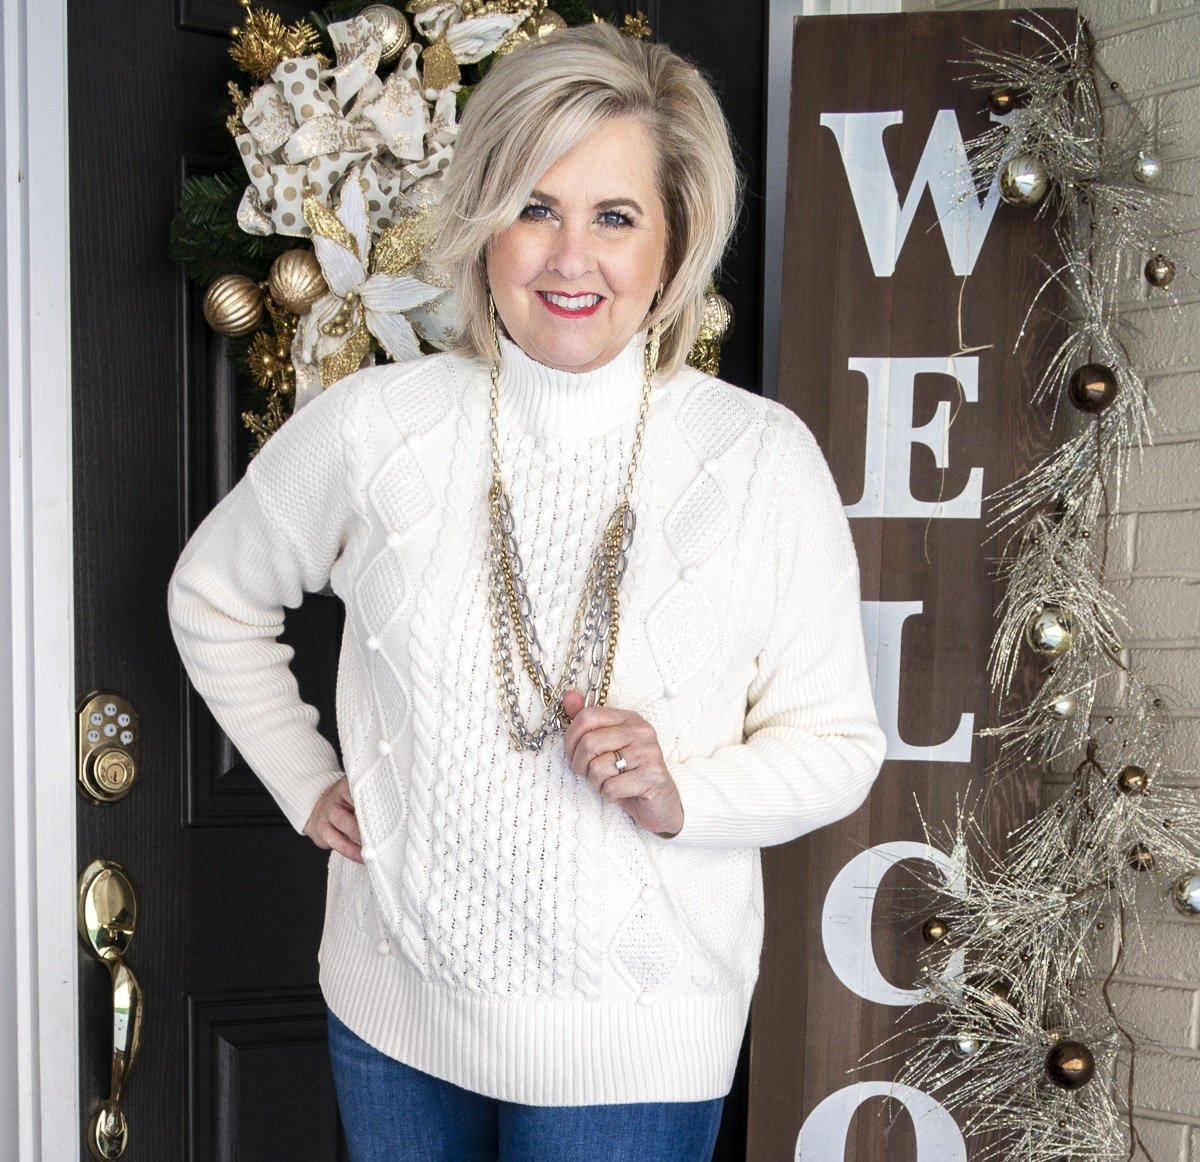 Fashion Blogger 50 Is Not Old is wearing a white cable-knit sweater and jewelry from Kendra Scott